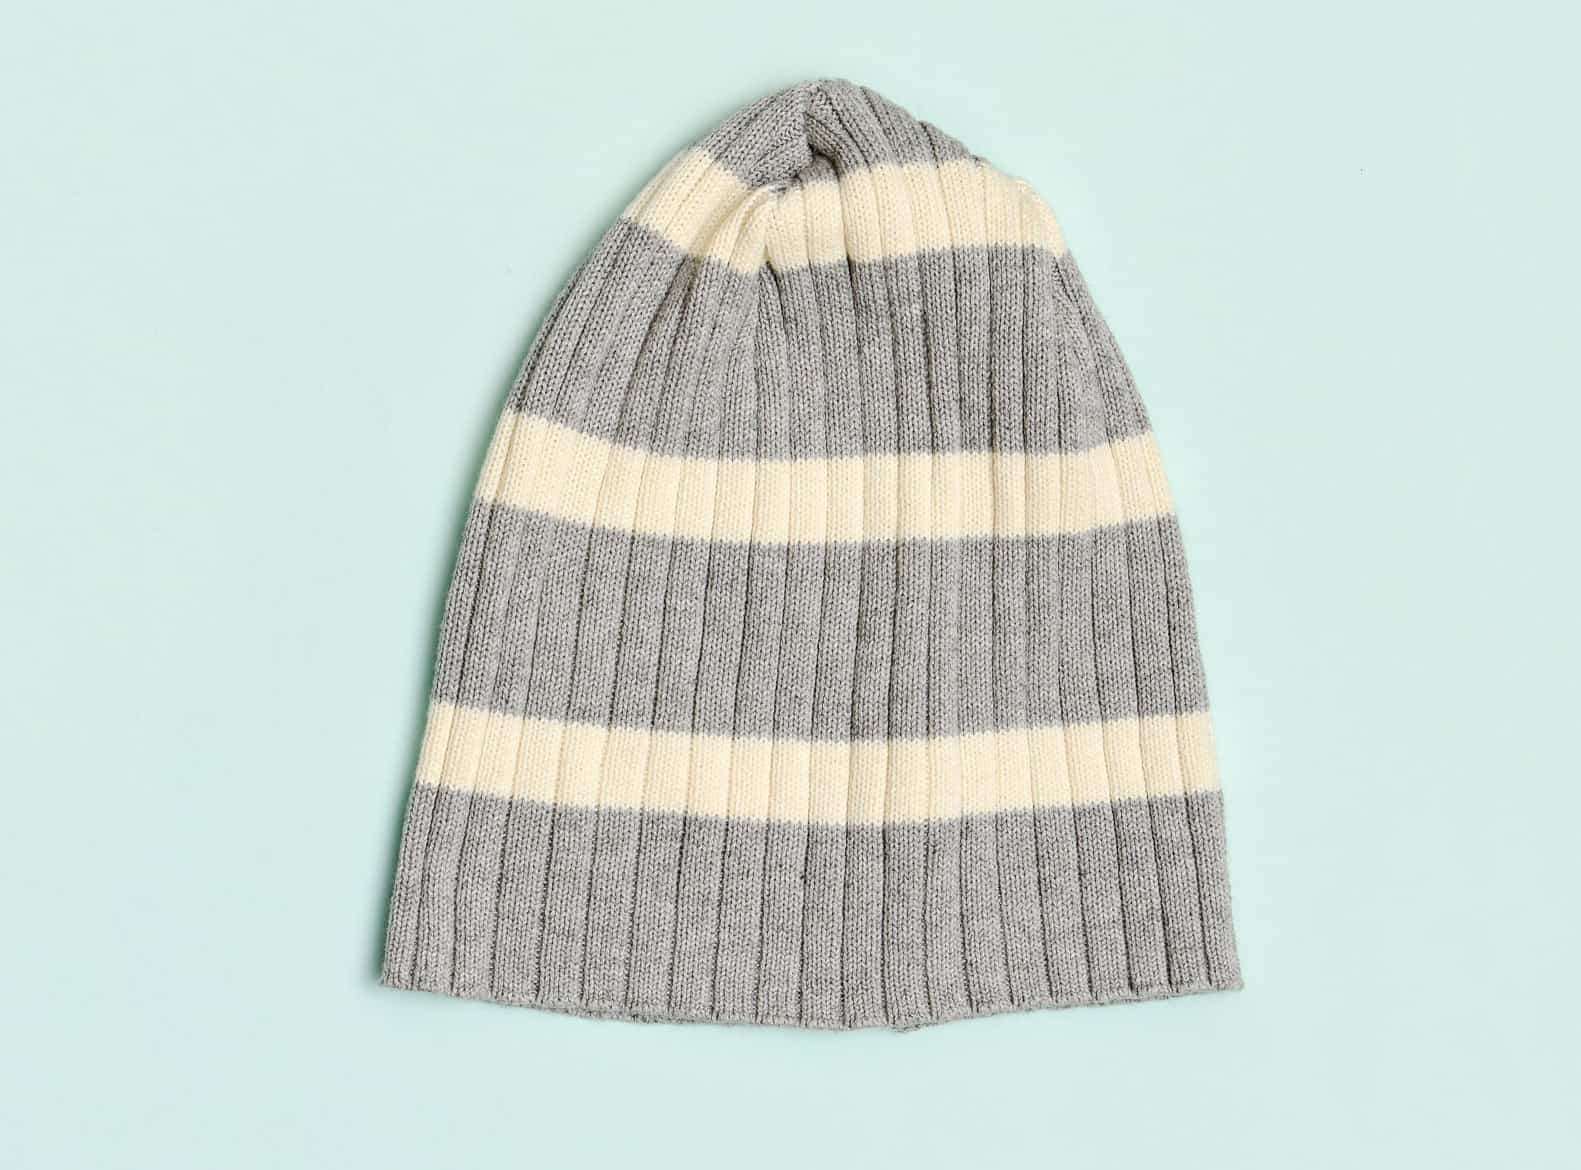 How to sew a beanie using a sweater  0a9b59d7fc0